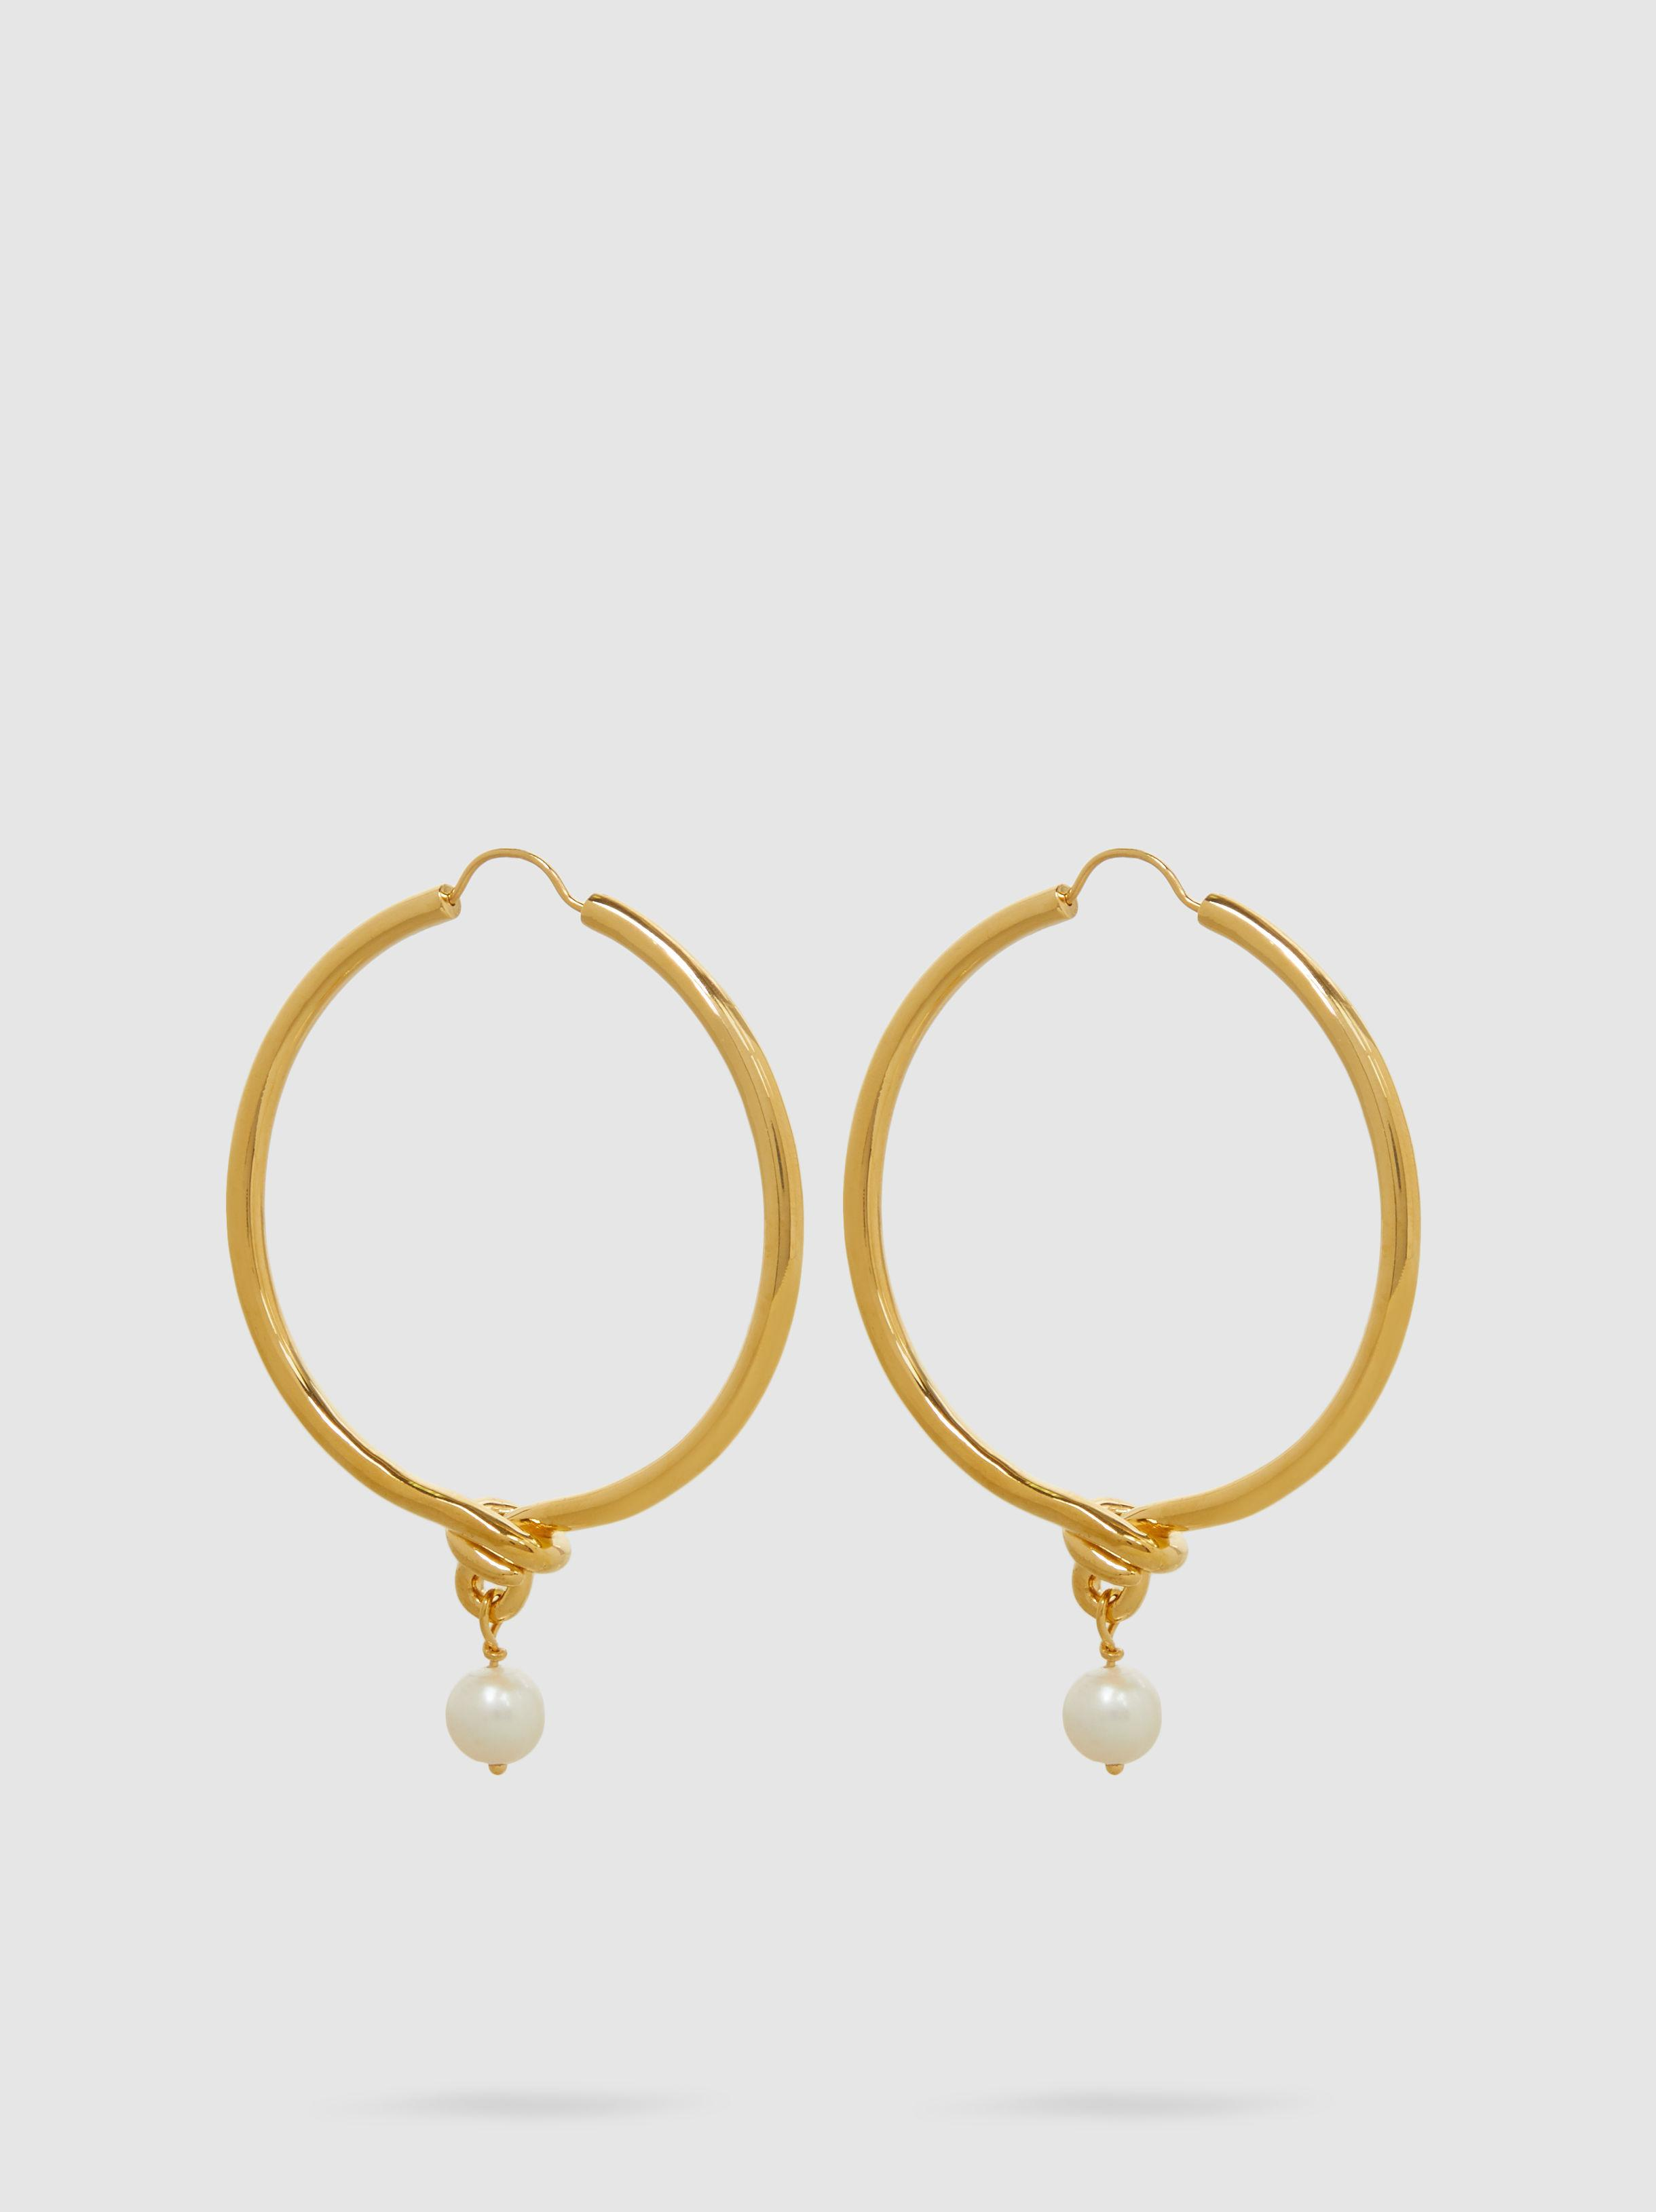 Eye M By Ileana Makri Gold-Plated Knot Hoop Earrings With Faux Pearl afR2OXc